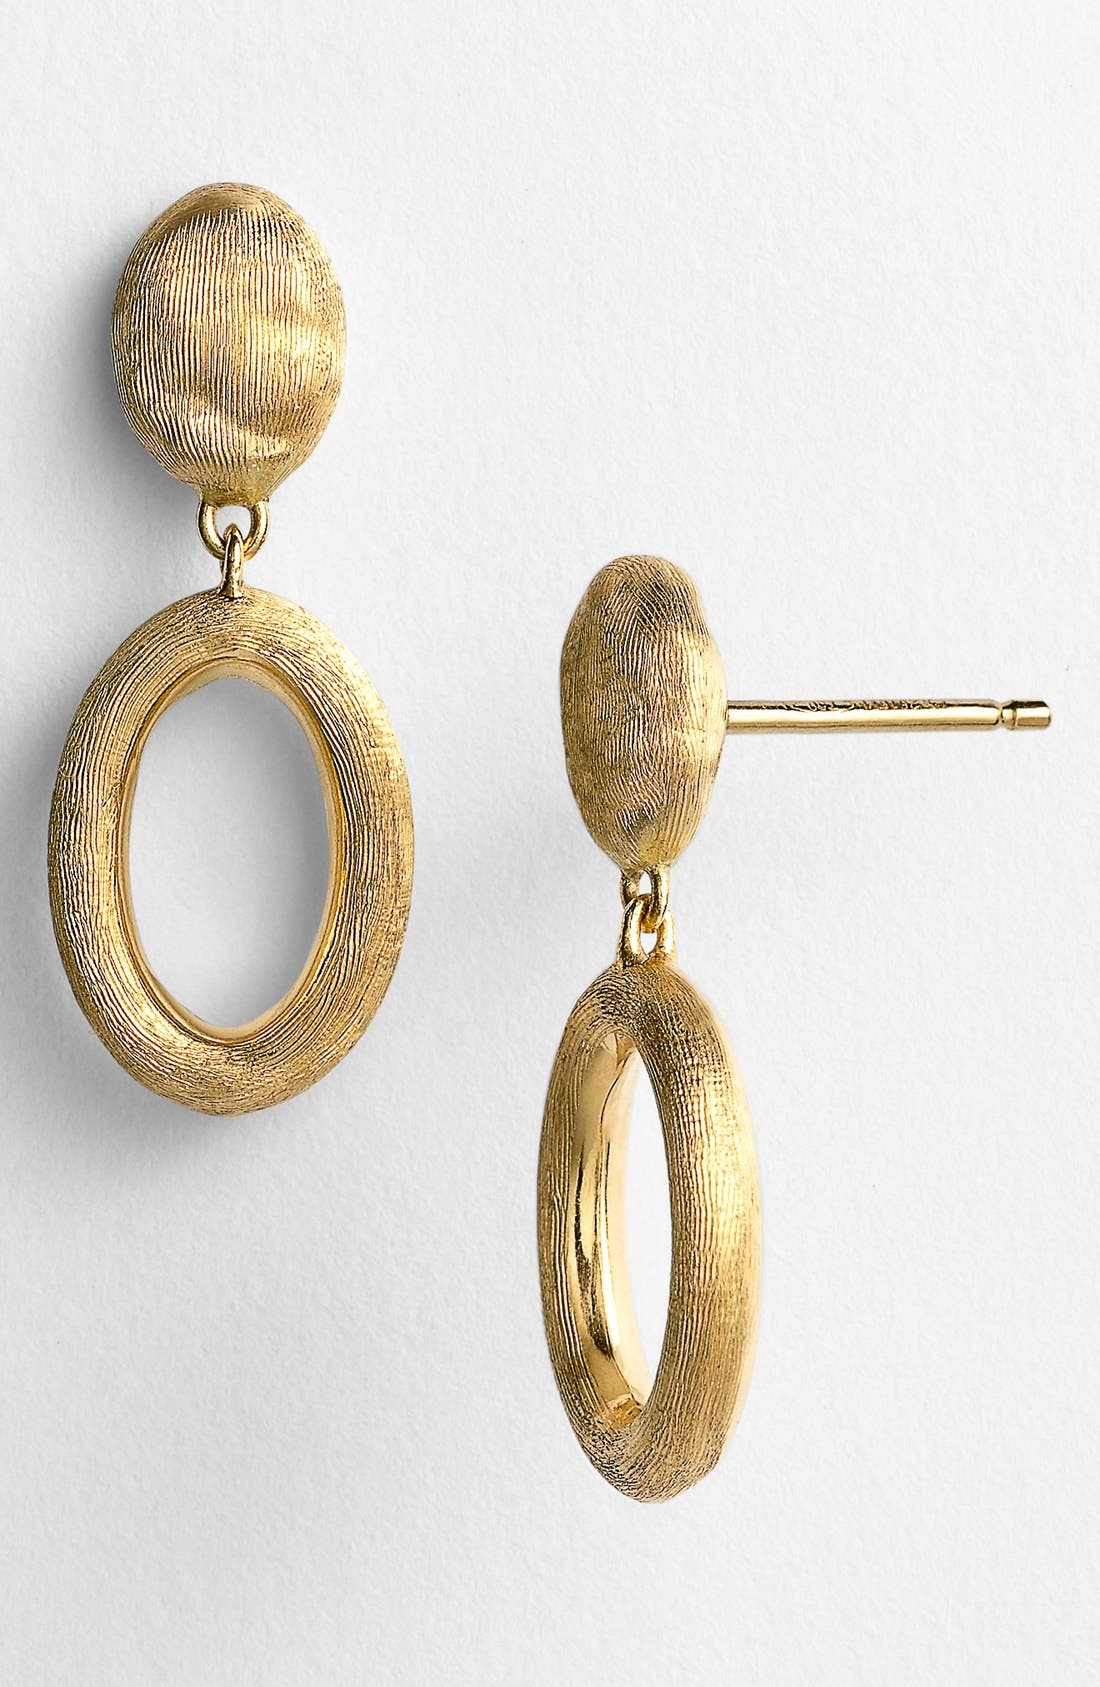 Alternate Image 1 Selected - Marco Bicego 'Siviglia' Drop Earrings